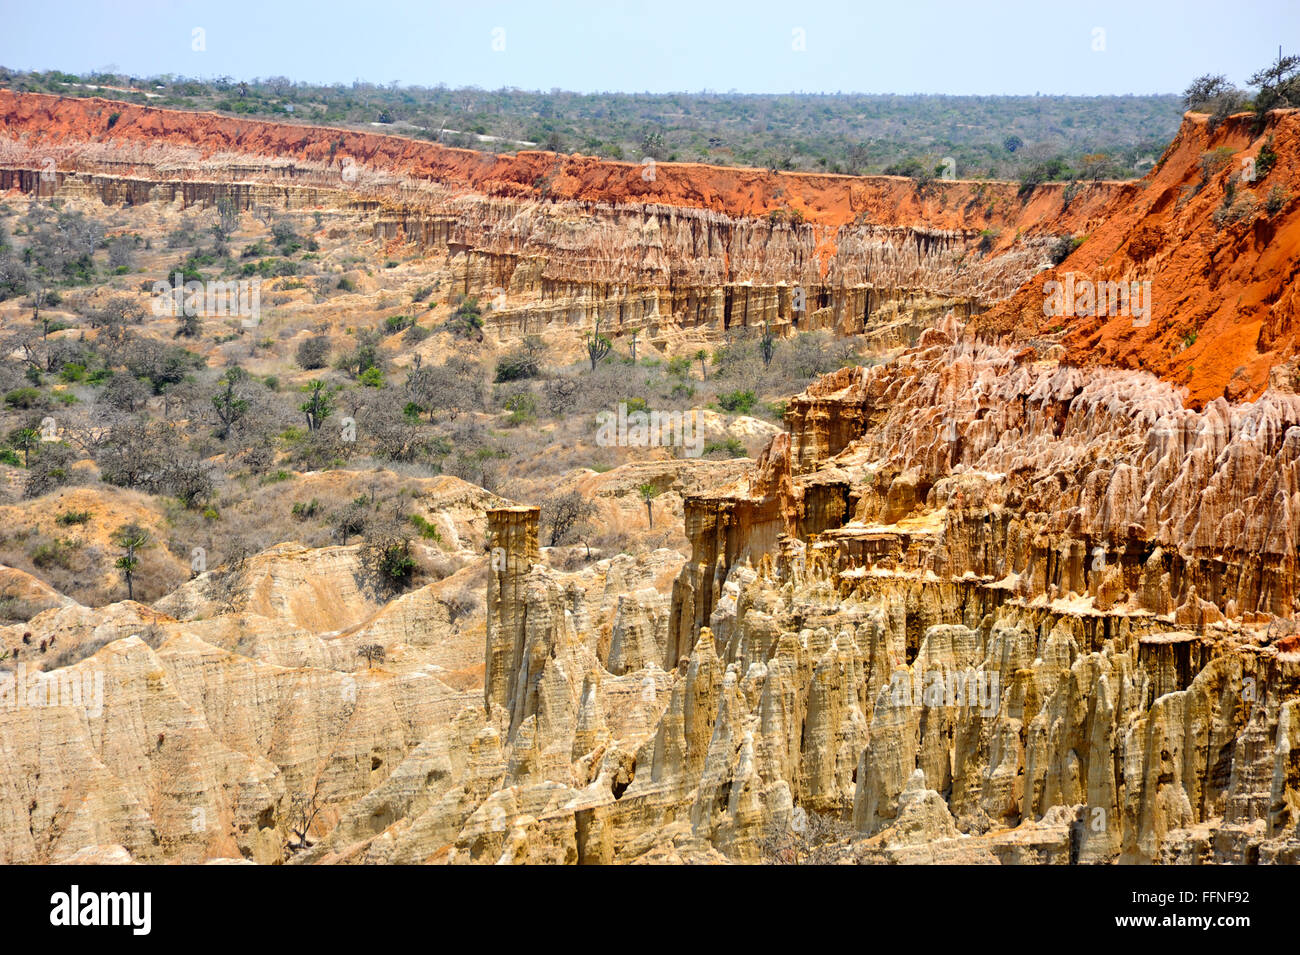 Miradouro da Lua is a set of cliffs 40 km south of Luanda, Angola. Over time, erosion caused by wind and rain creating - Stock Image